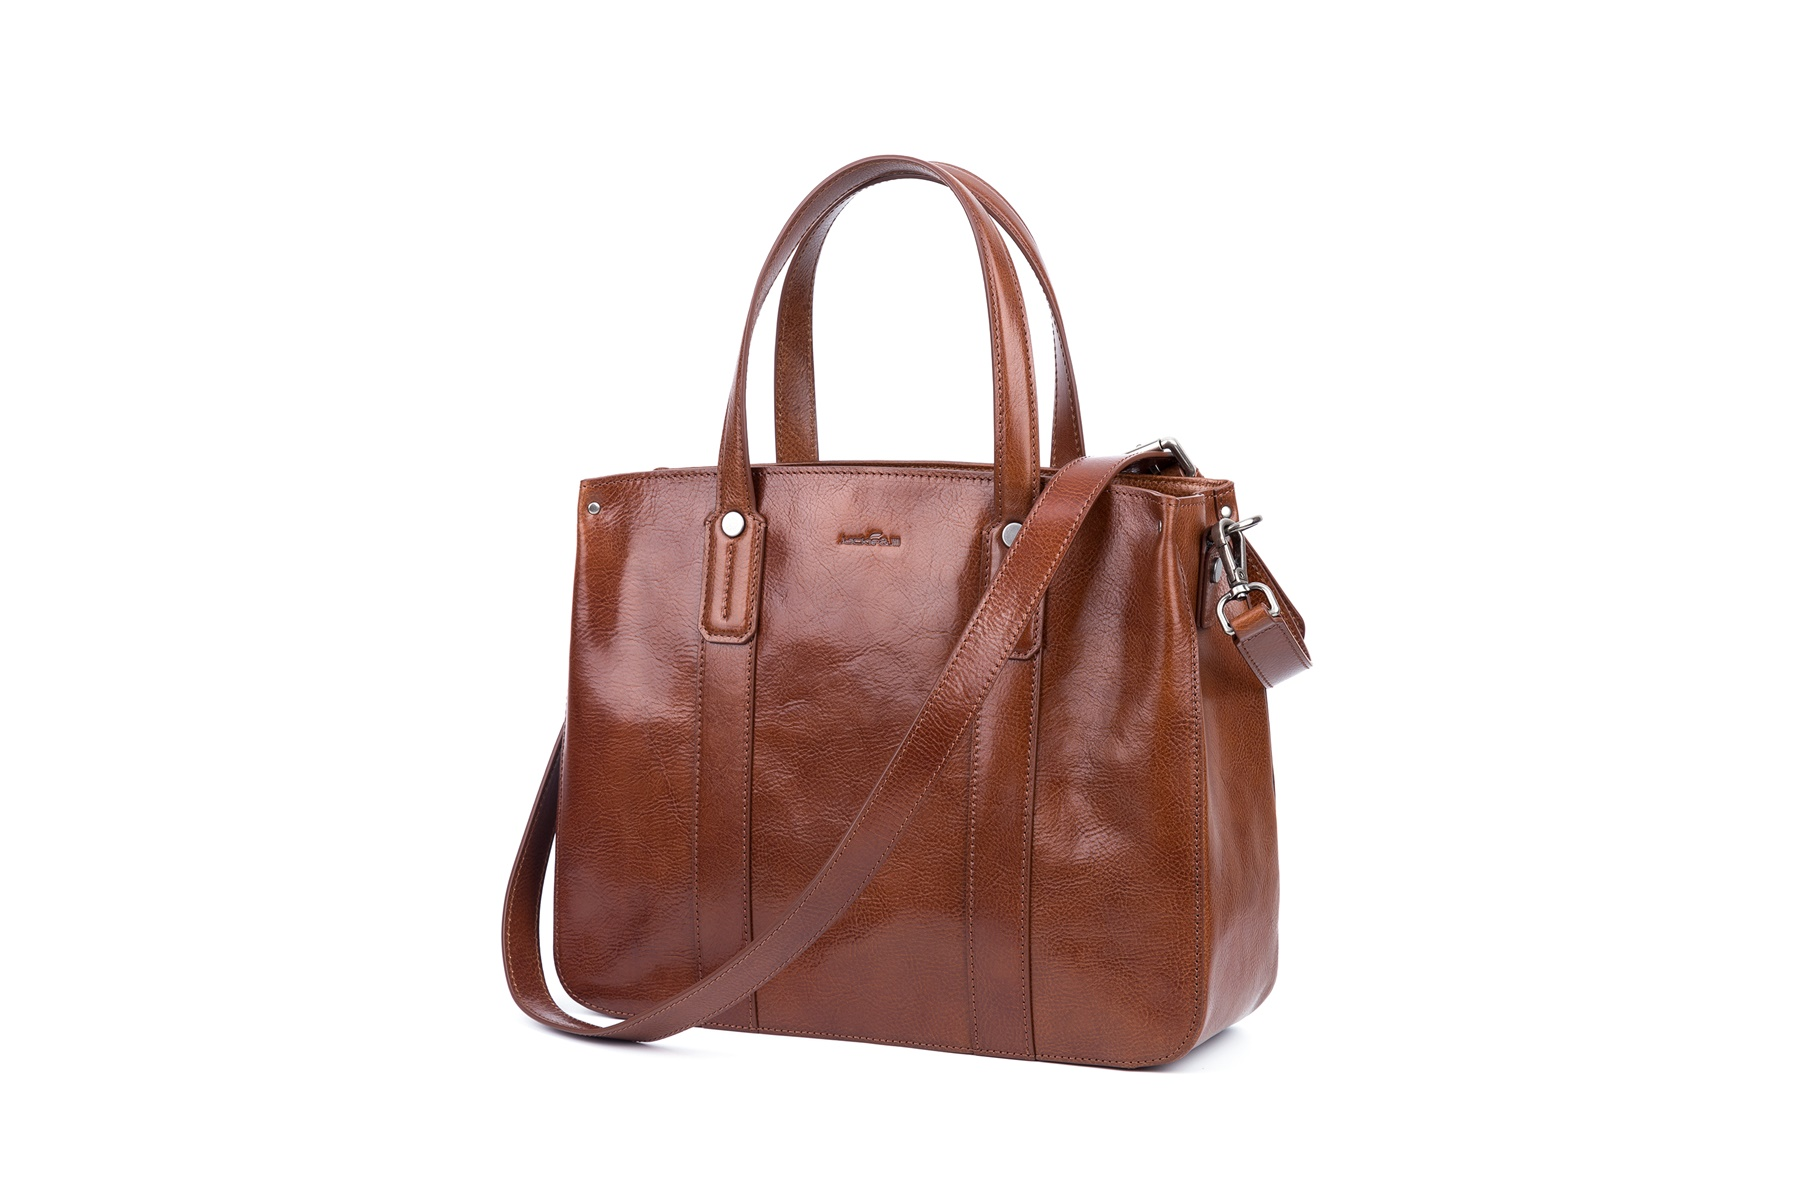 GF bags-Latest Handbags | Handbag Top Handle Waxed Leather Zipper Close Bag - Gaofeng-7